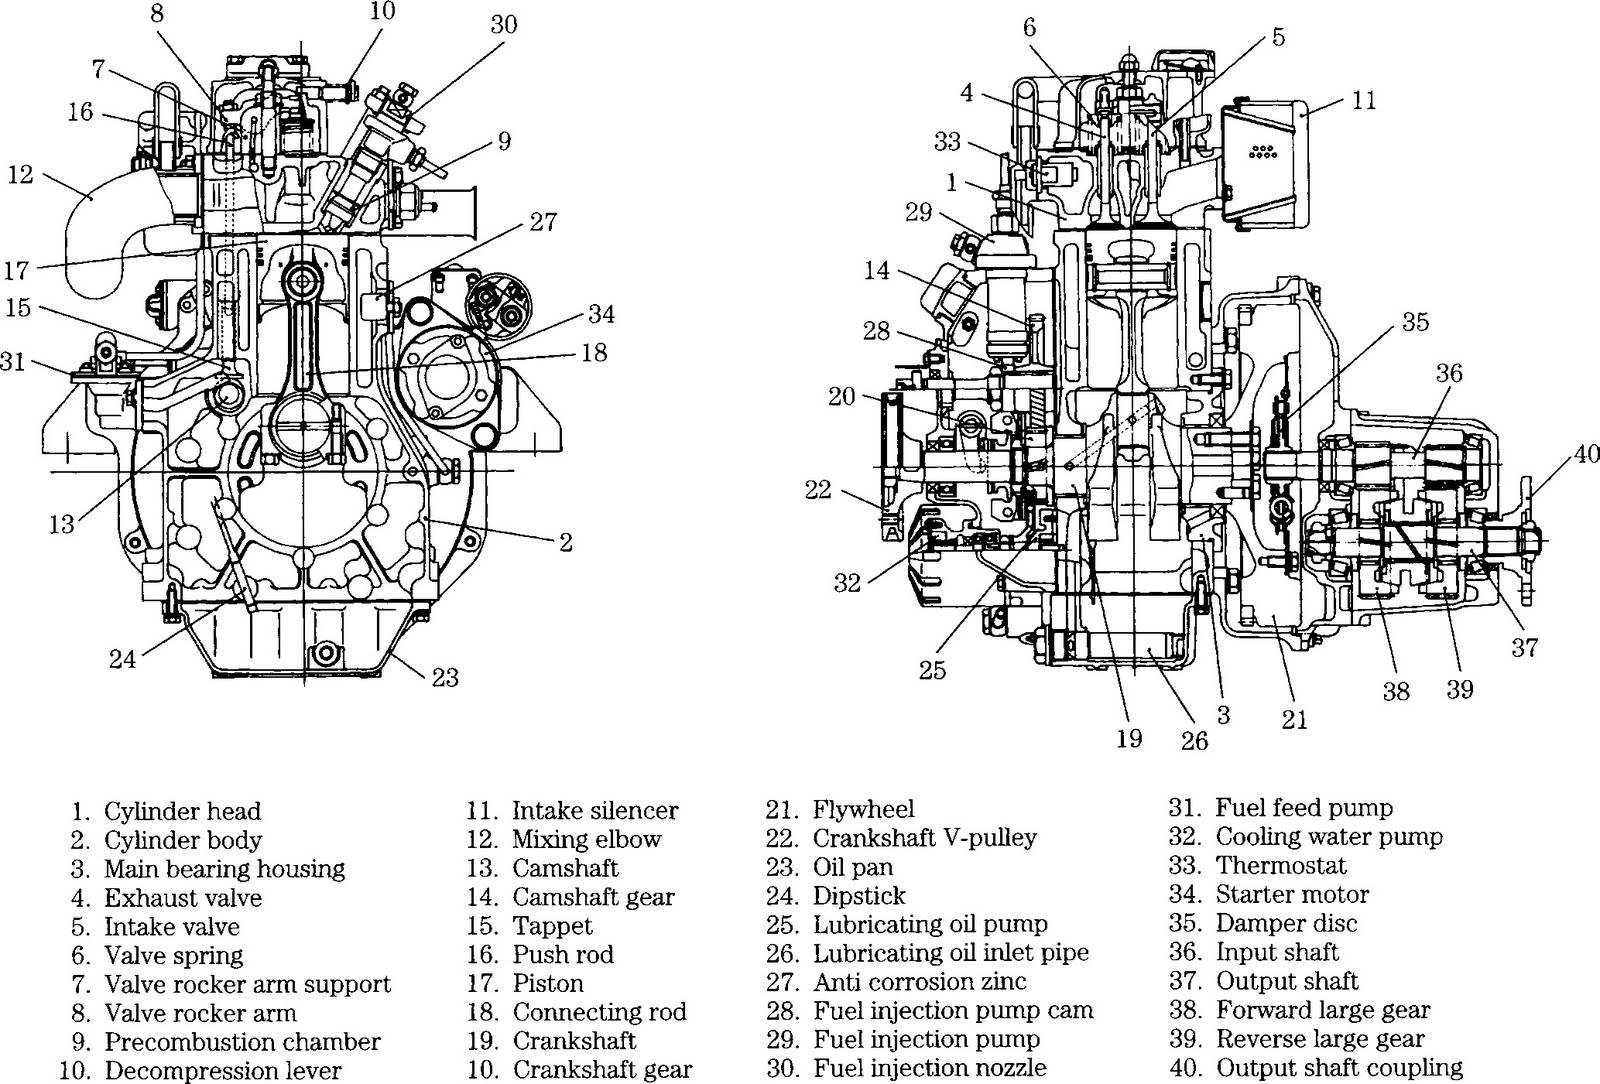 Troubleshooting And Repairing Diesel Engines  April 2011